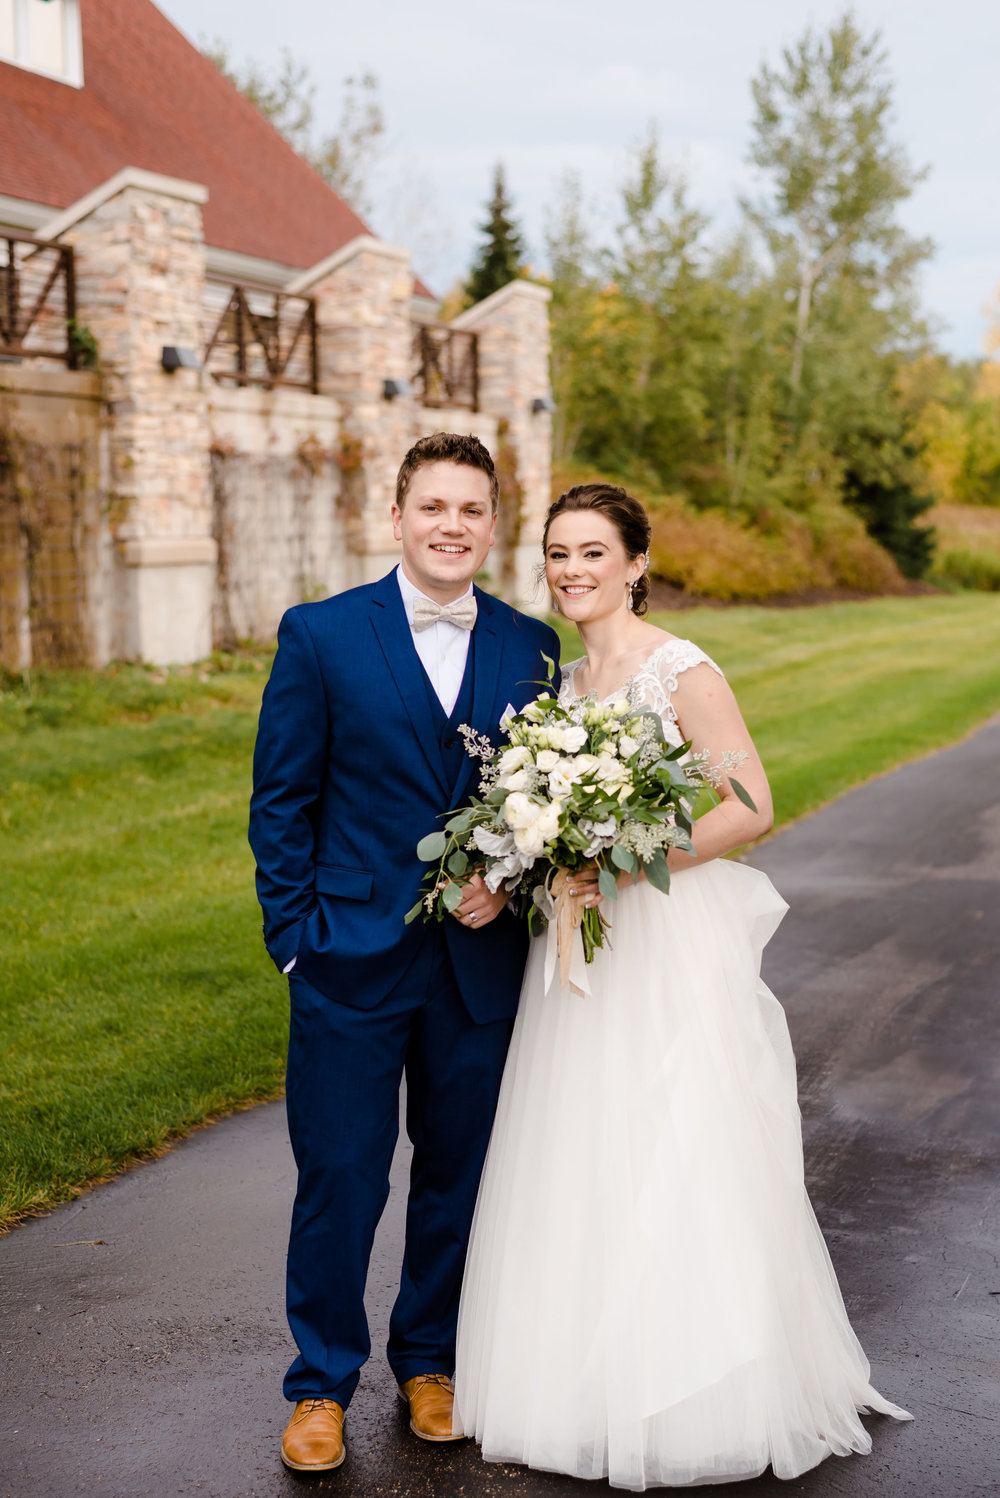 Elm Creek Chalet Wedding - Bride and Groom - Maple Grove Wedding Venue